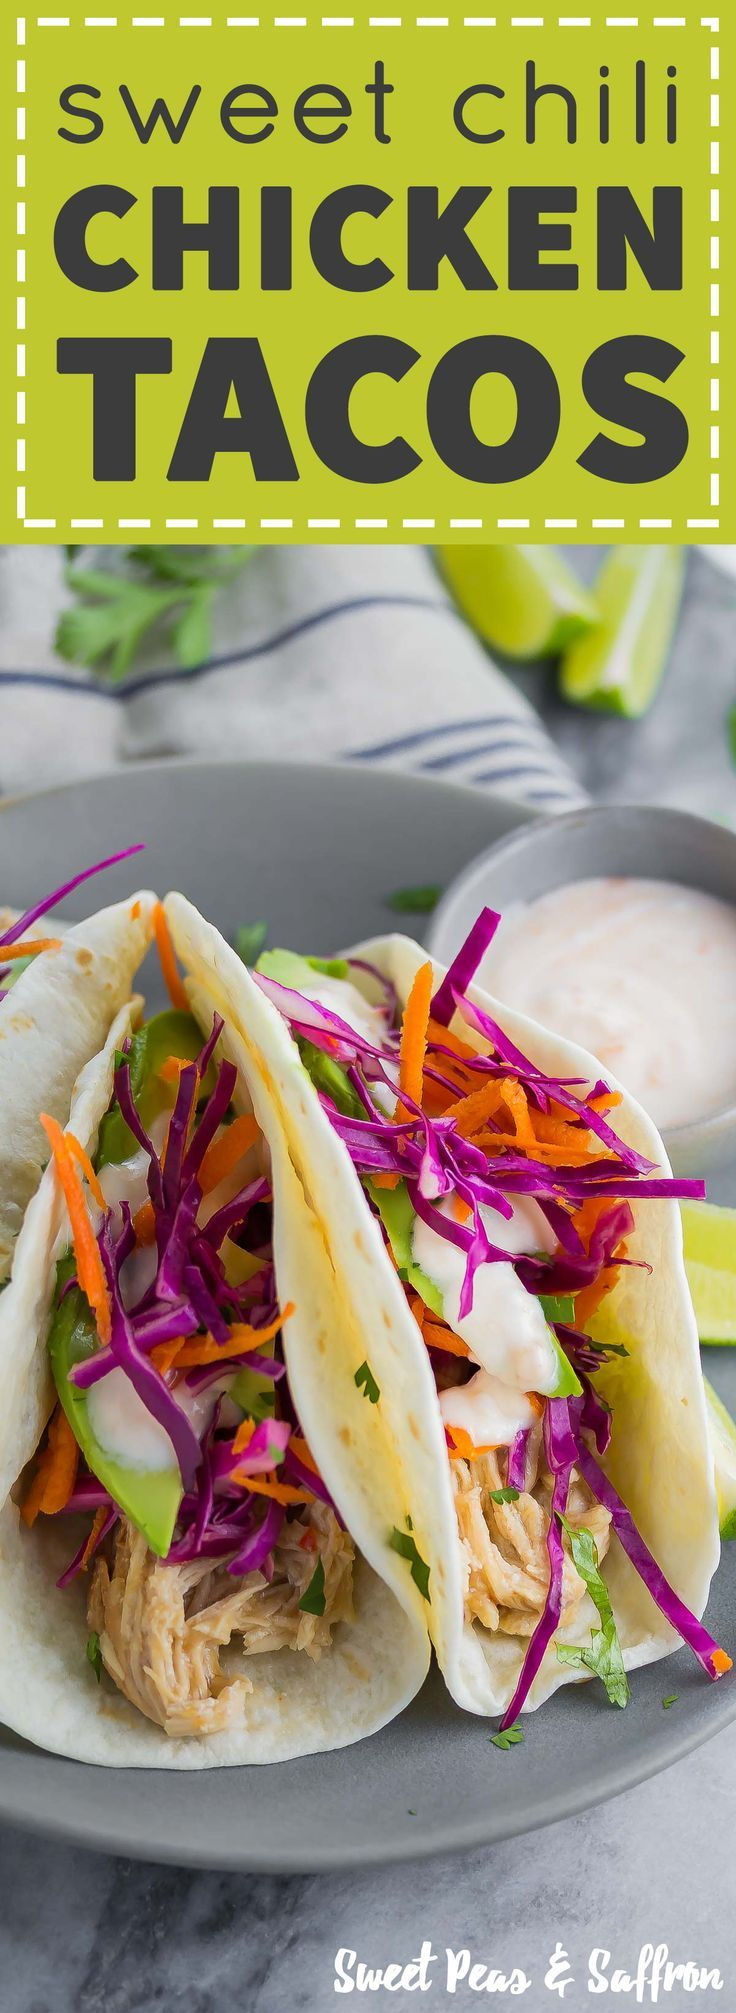 These Sweet Chili Chicken Tacos are made with slow cooker sweet chili chicken and topped with yogurt sauce.  Dinner is ready in 15 minutes!